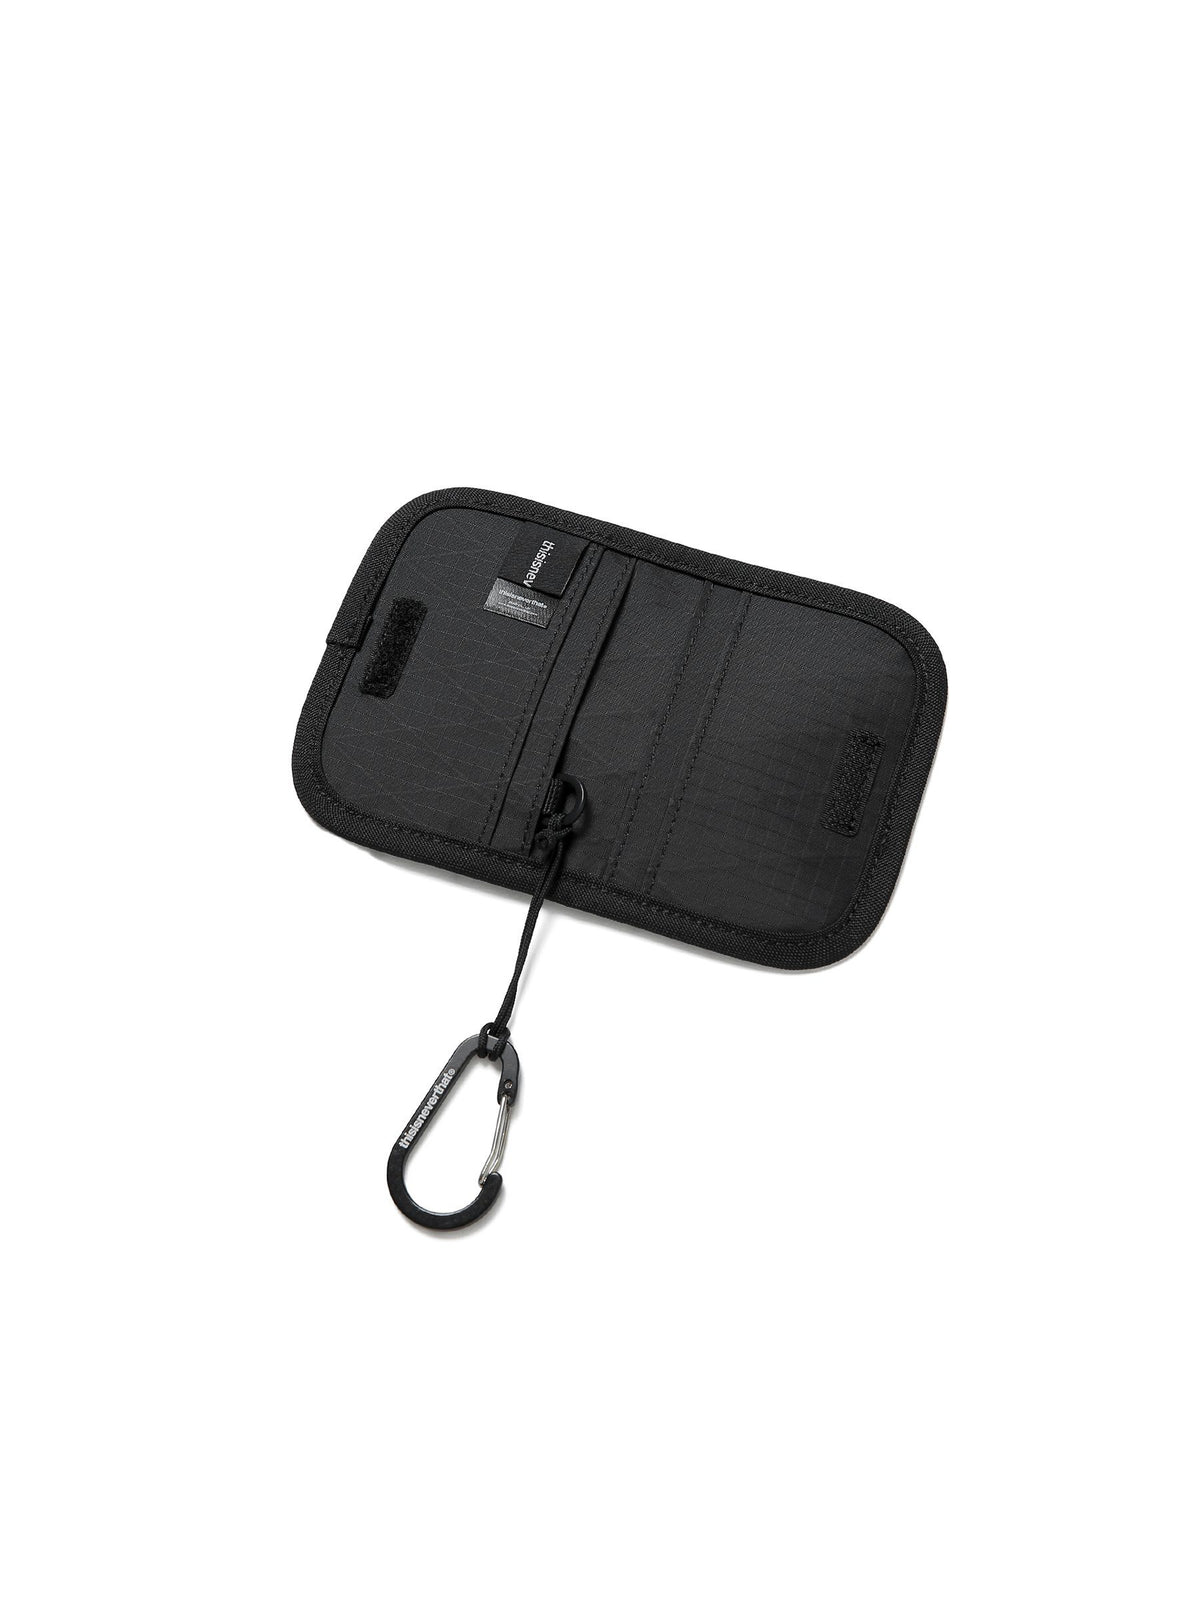 X-Pac™ SP Card Holder Accessory